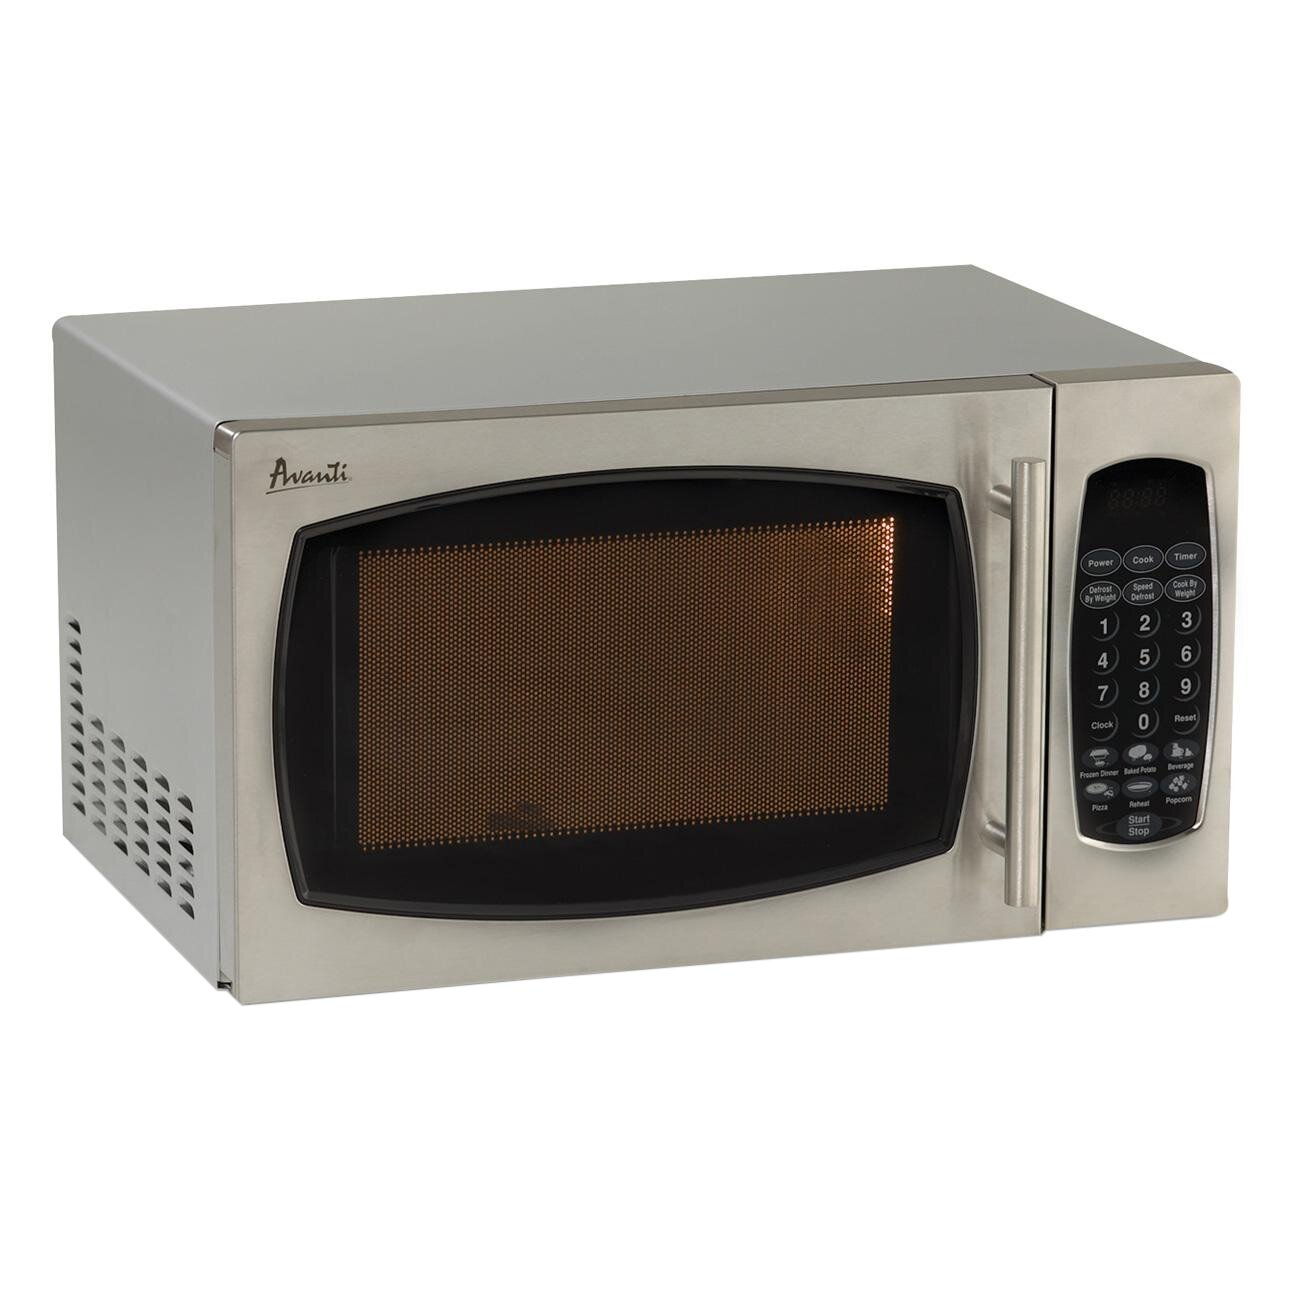 avanti 0 9 cu ft 900w countertop microwave reviews. Black Bedroom Furniture Sets. Home Design Ideas